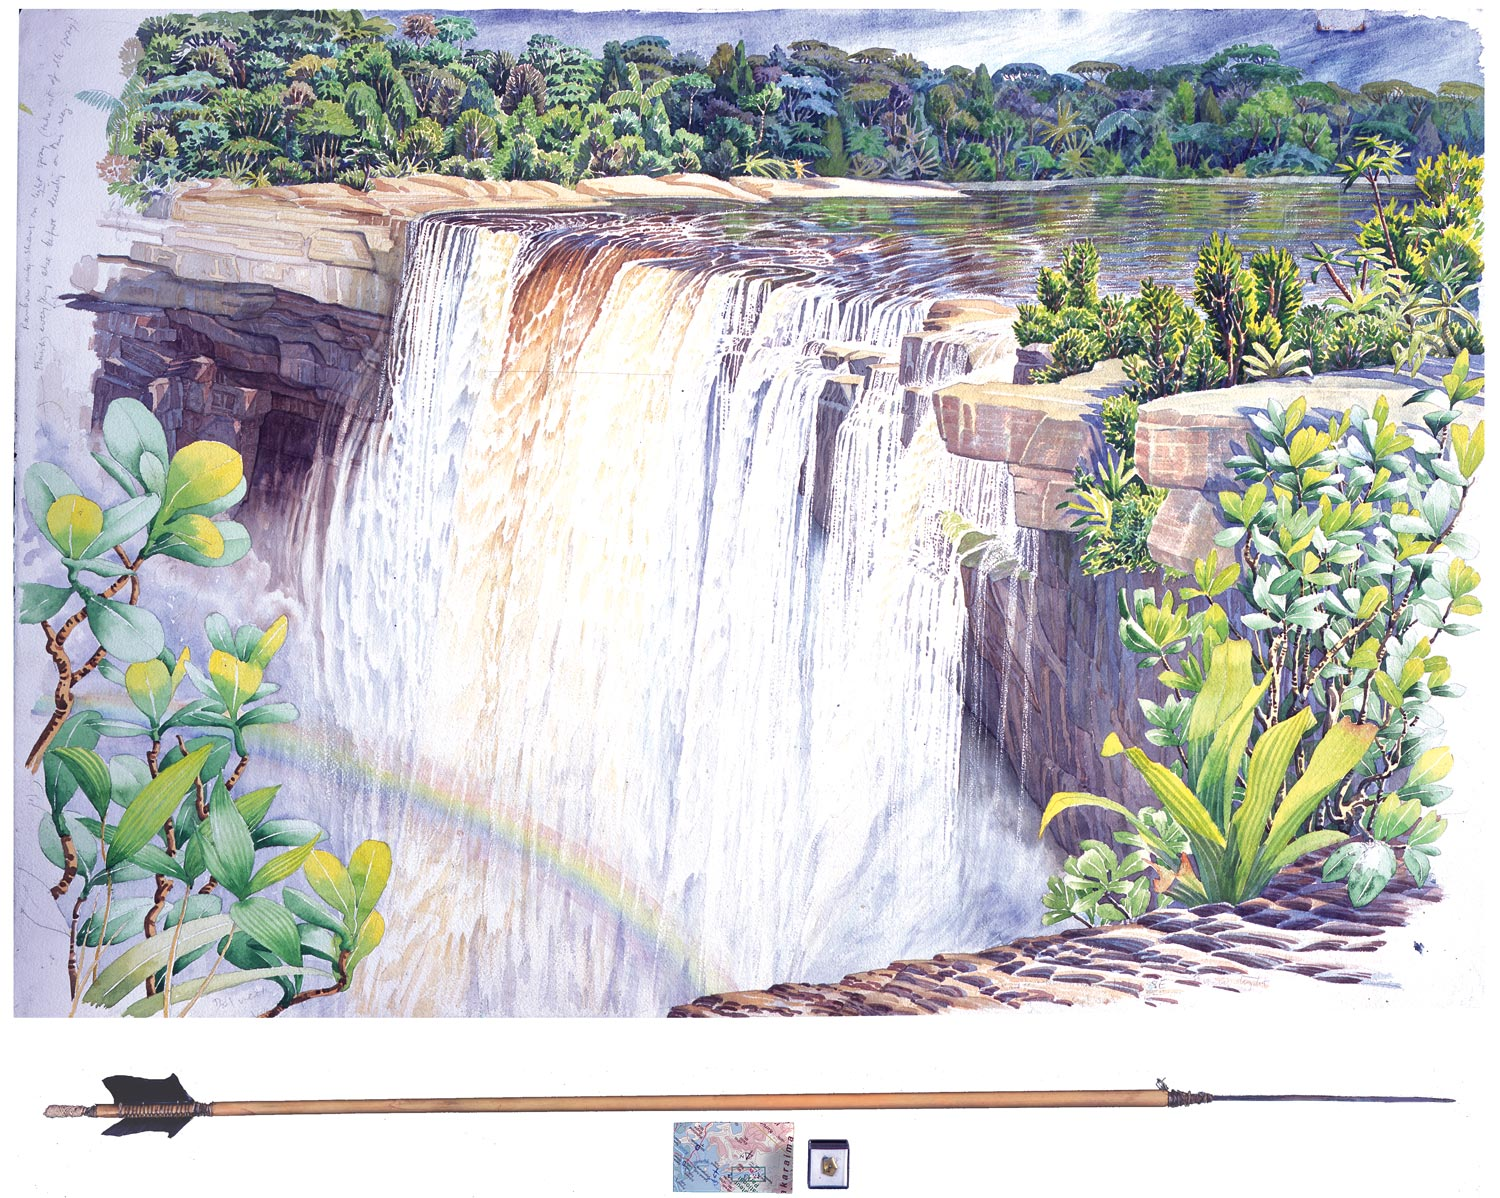 Tony Foster,  Kaieteur Falls Looking S from Ranger Point , 2002  |  Watercolor and graphite on paper, mixed media  |  27 3/8 x 40 3/8 in. / 3 3/4 x 38 1/4 in.  |  1998.2.36